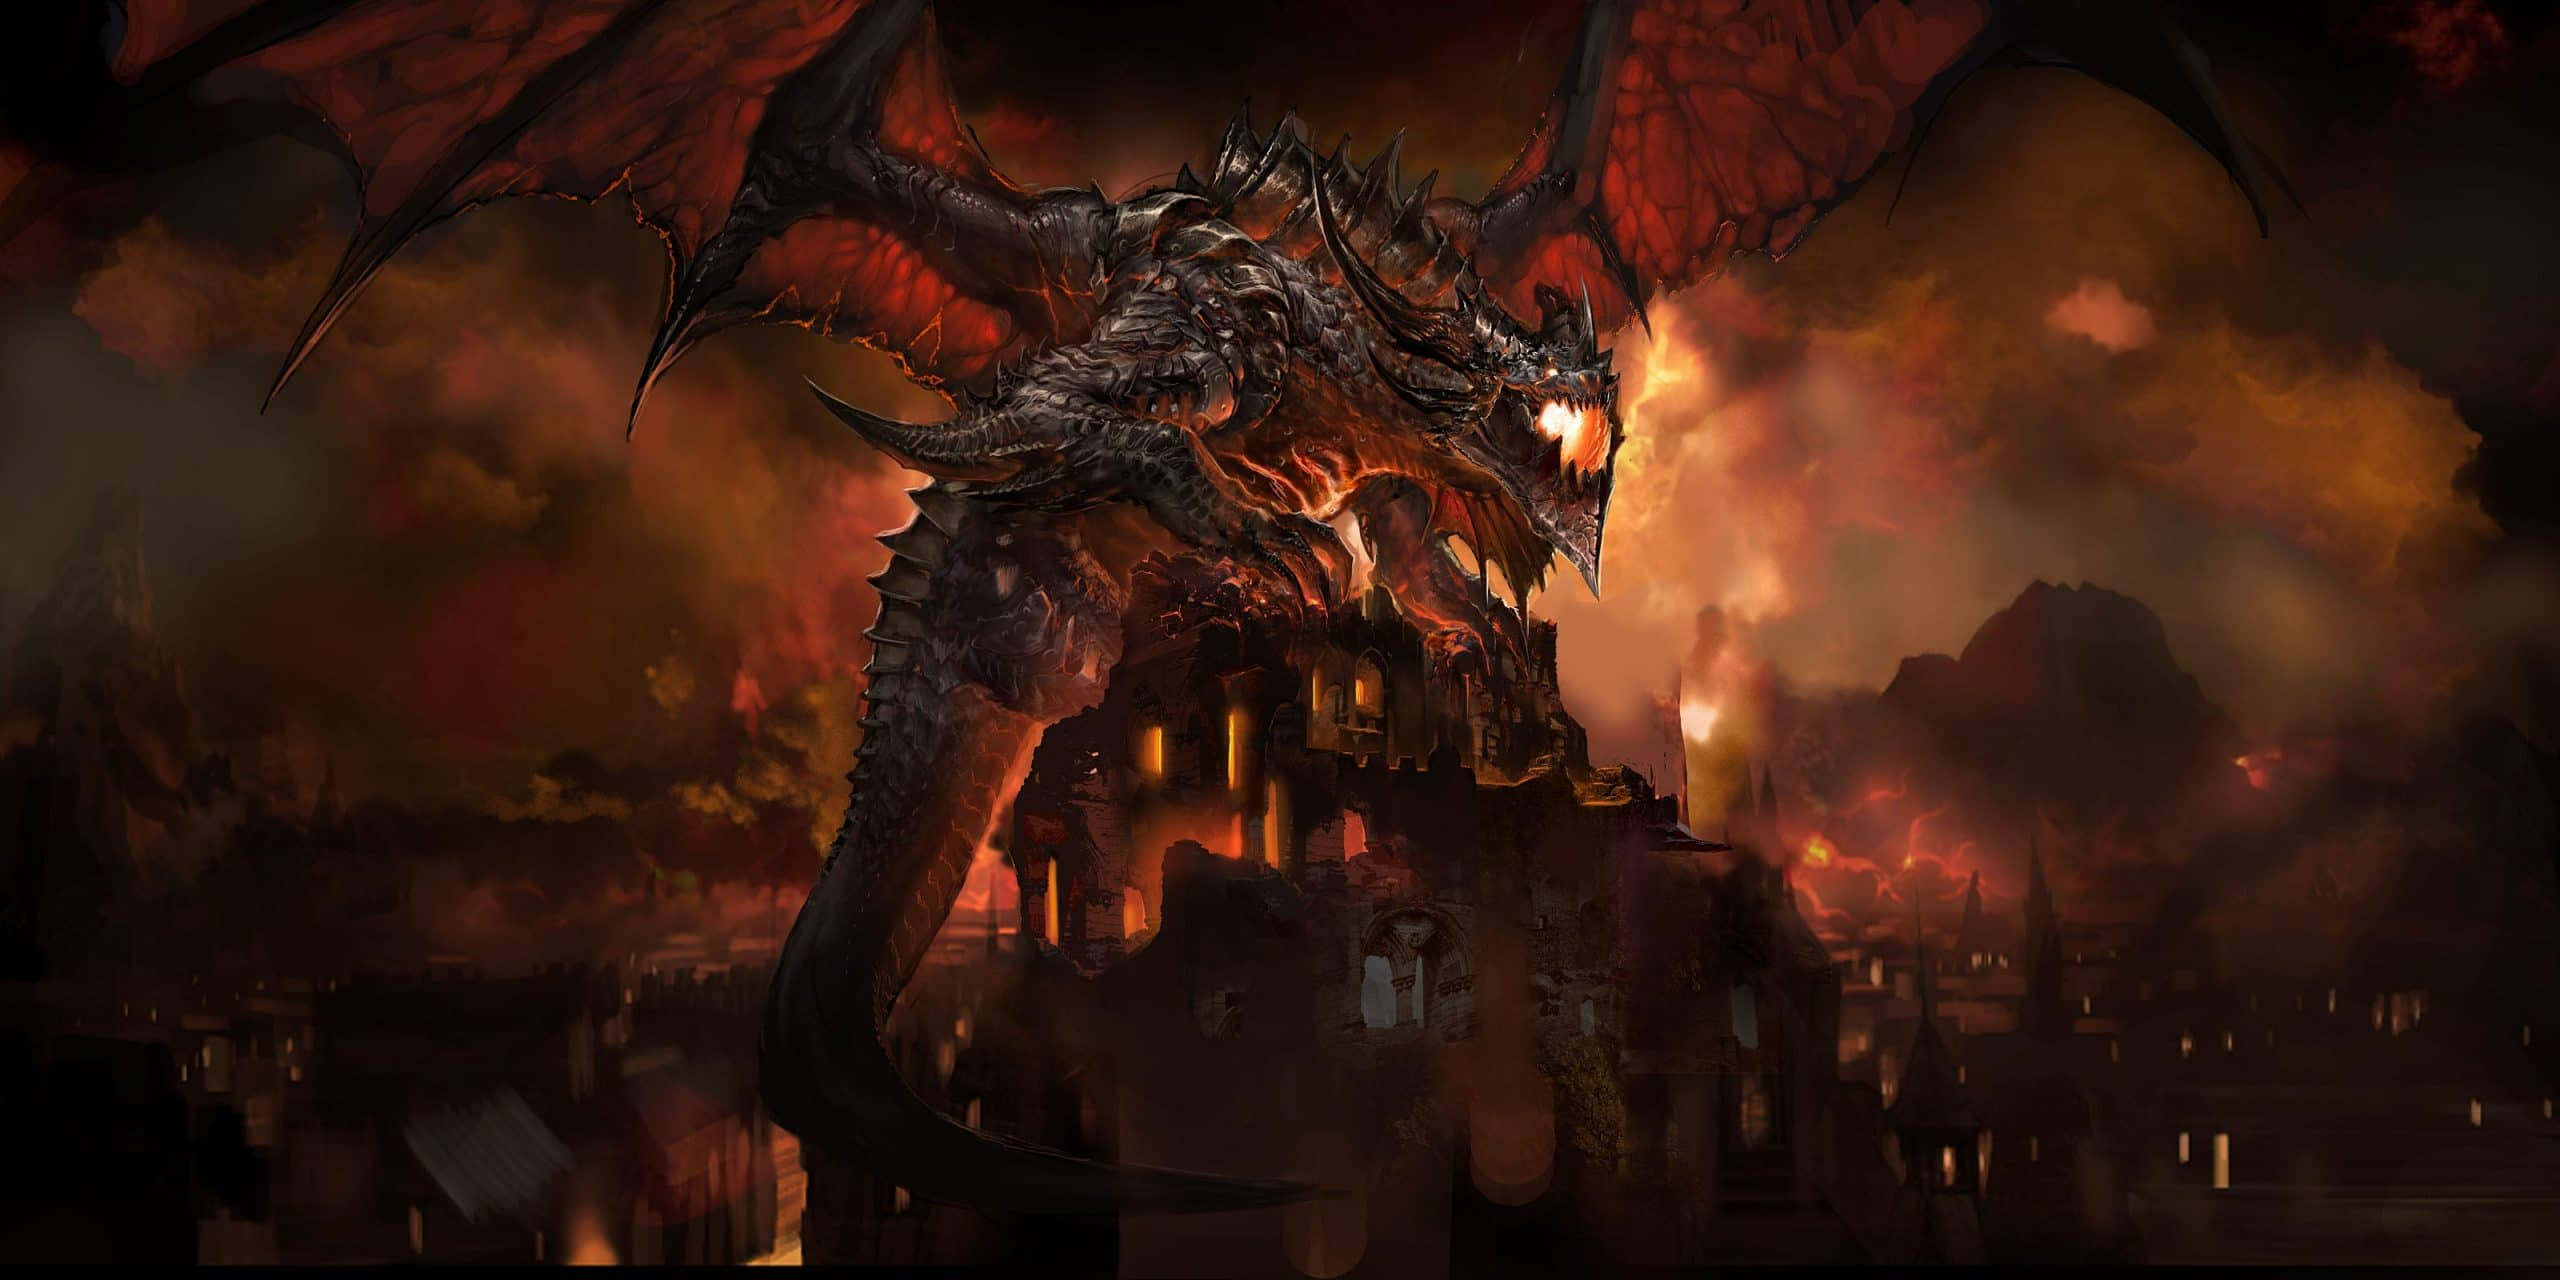 deathwing_alamuerte_artwork_montana